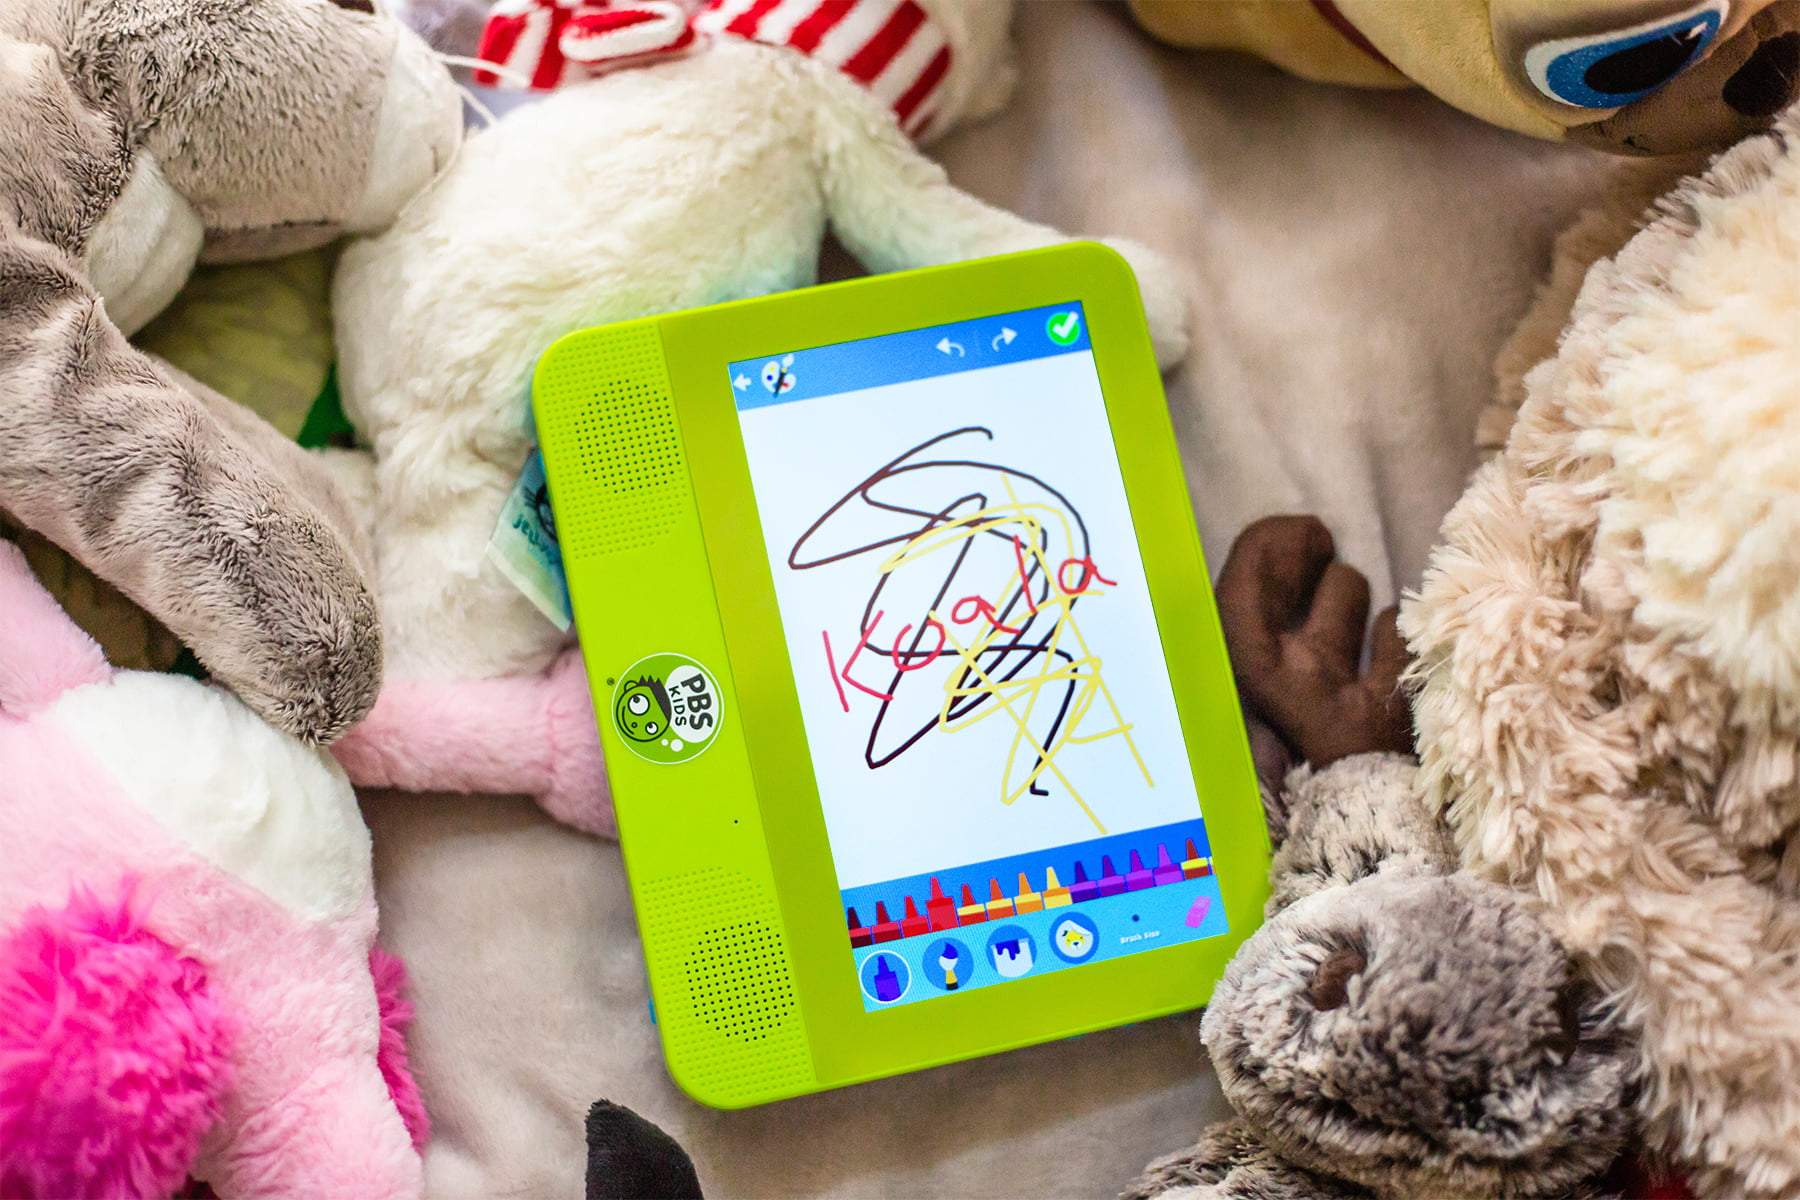 PBS KIDS Playtime Tablet DVD Player Android 7 0 Nougat 7